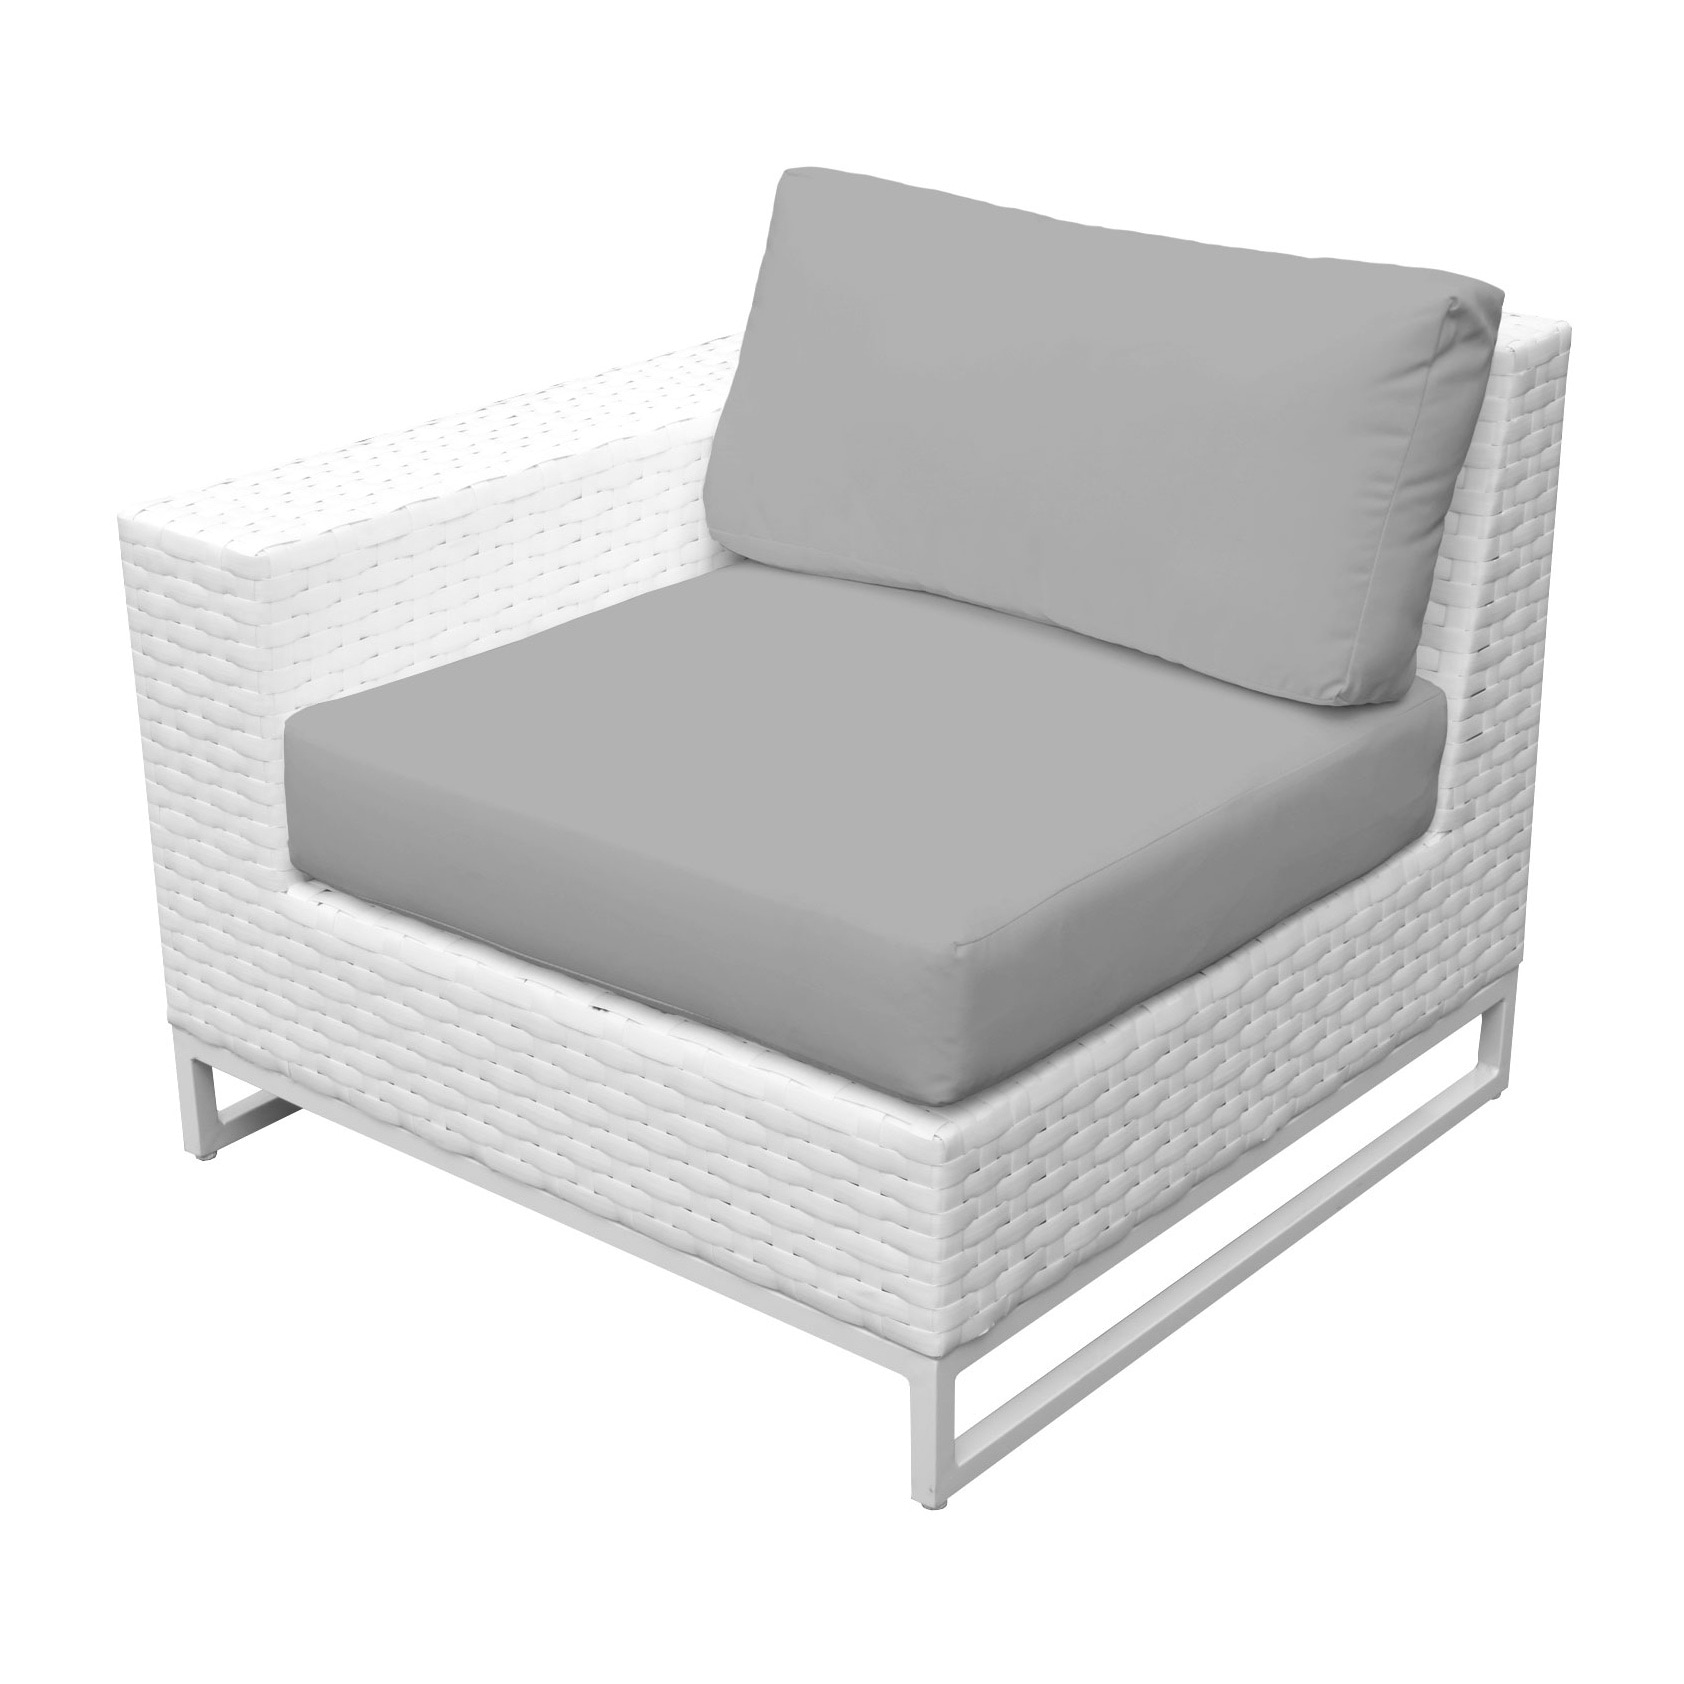 Coastal OH0481 Outdoor Patio Wicker Sofa Segment With Right Arm   Free  Shipping Today   Overstock.com   26901692